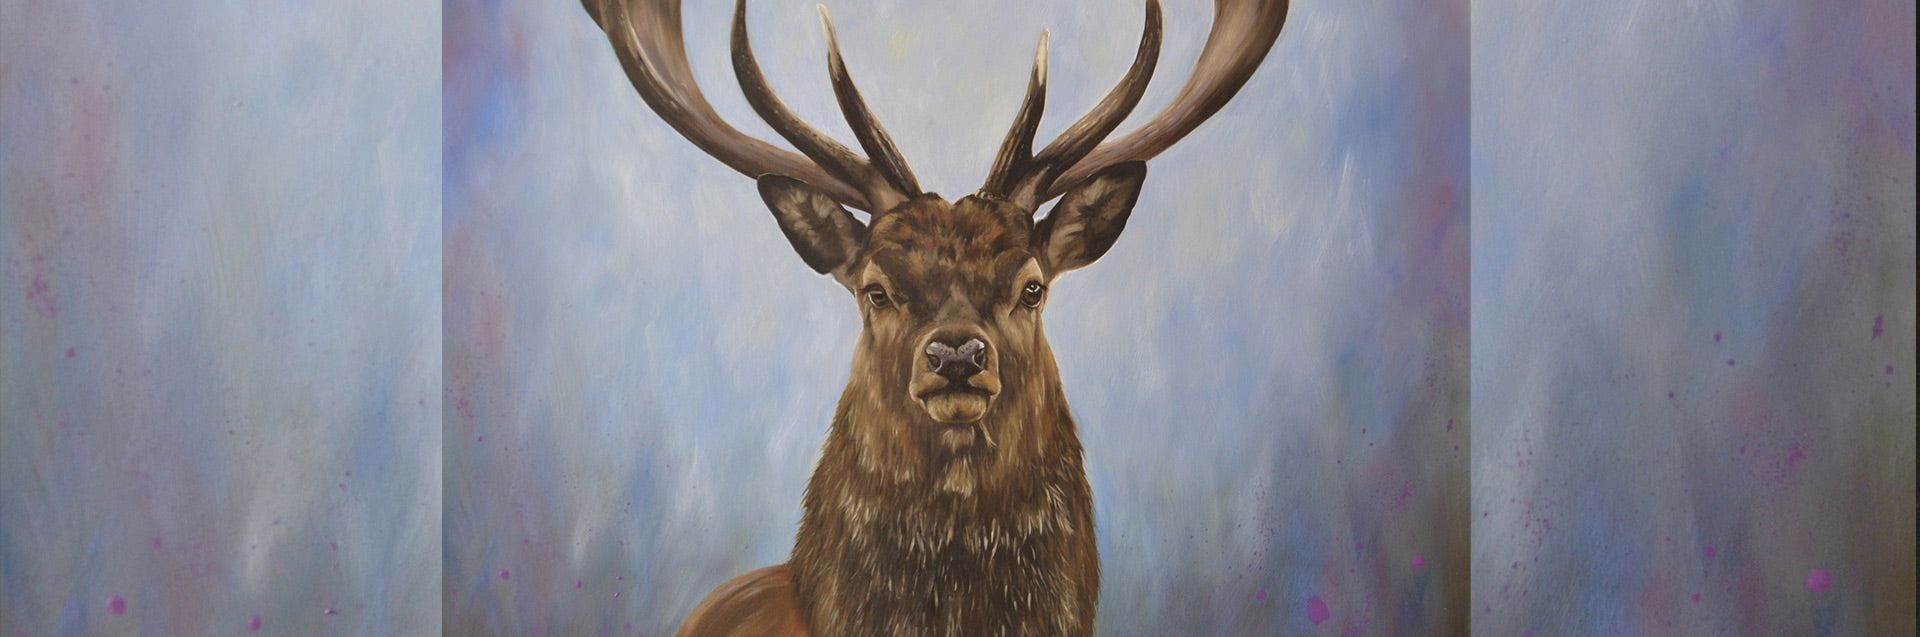 Stag painting 'The Protector'